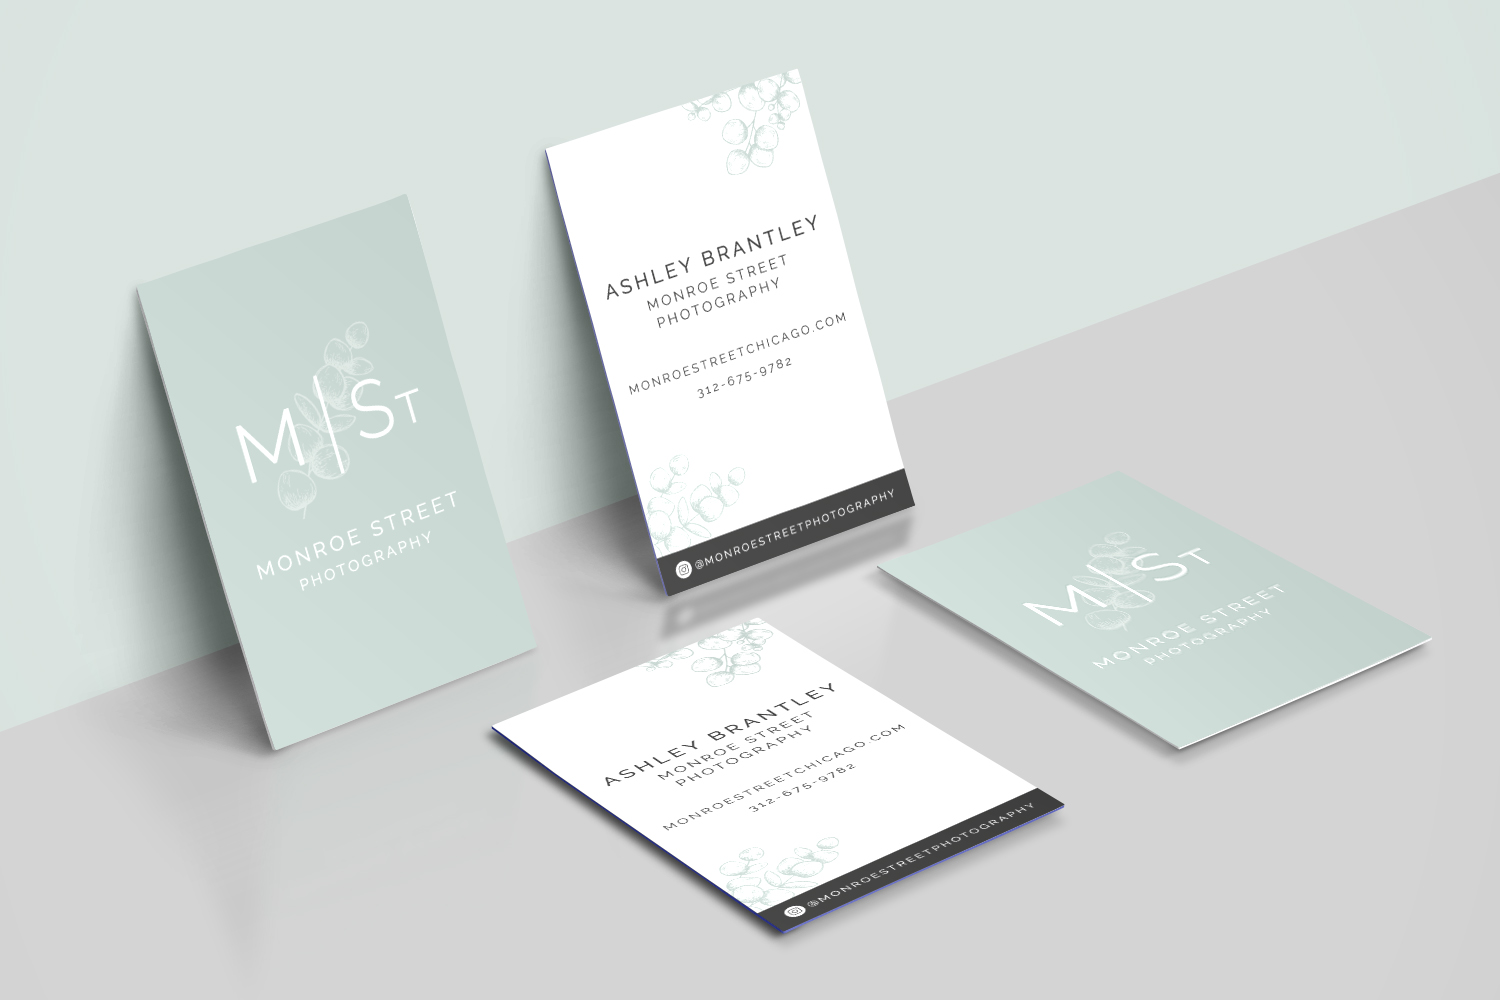 Monroe Street Photography - Logo and Branding design for small businesses by Bea & Bloom Creative Design Studio